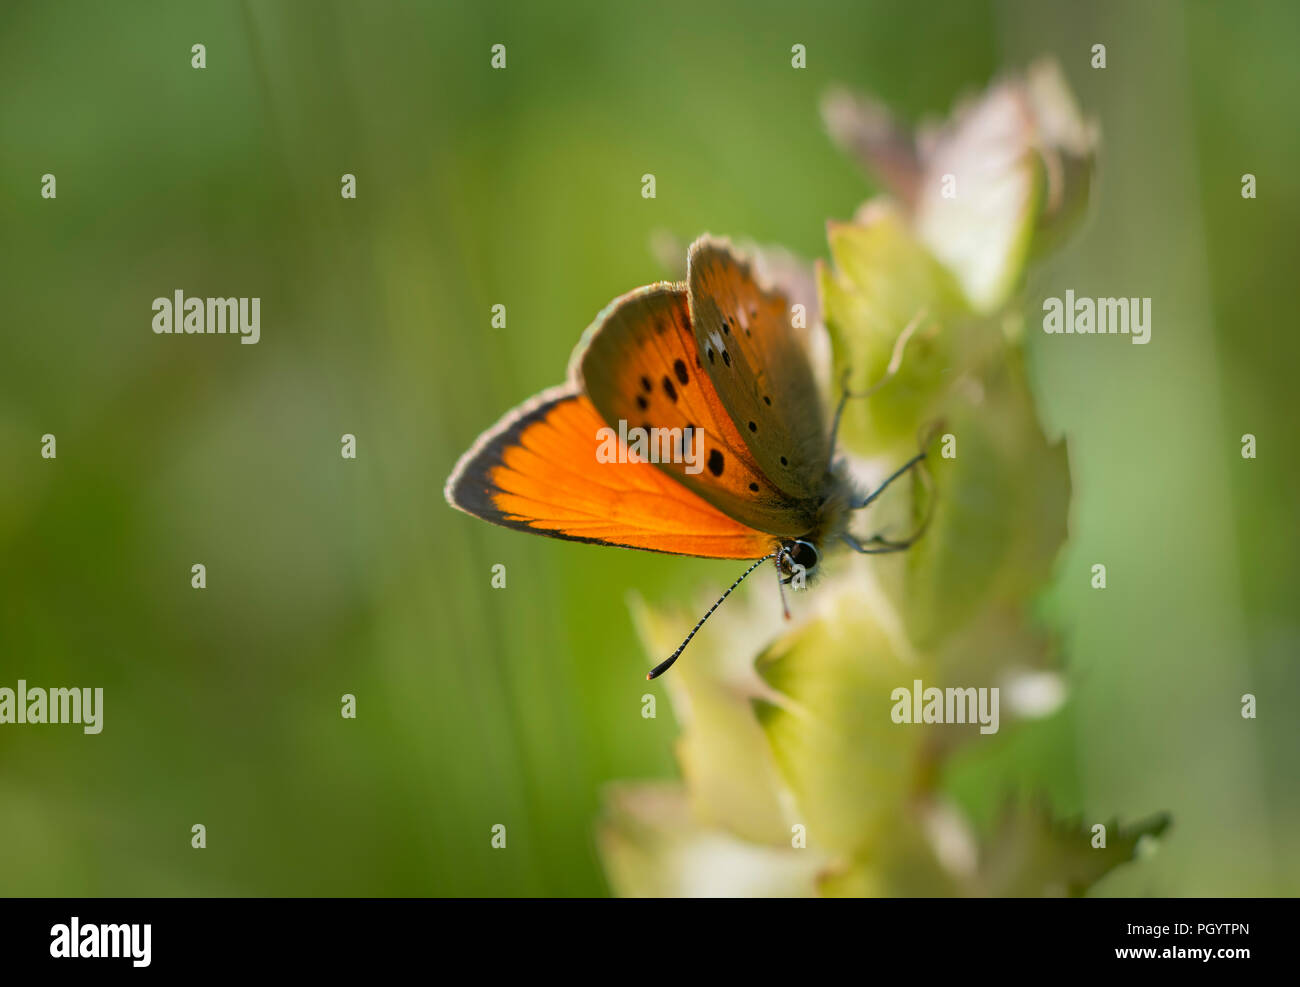 Lannaz insects Stock Photo